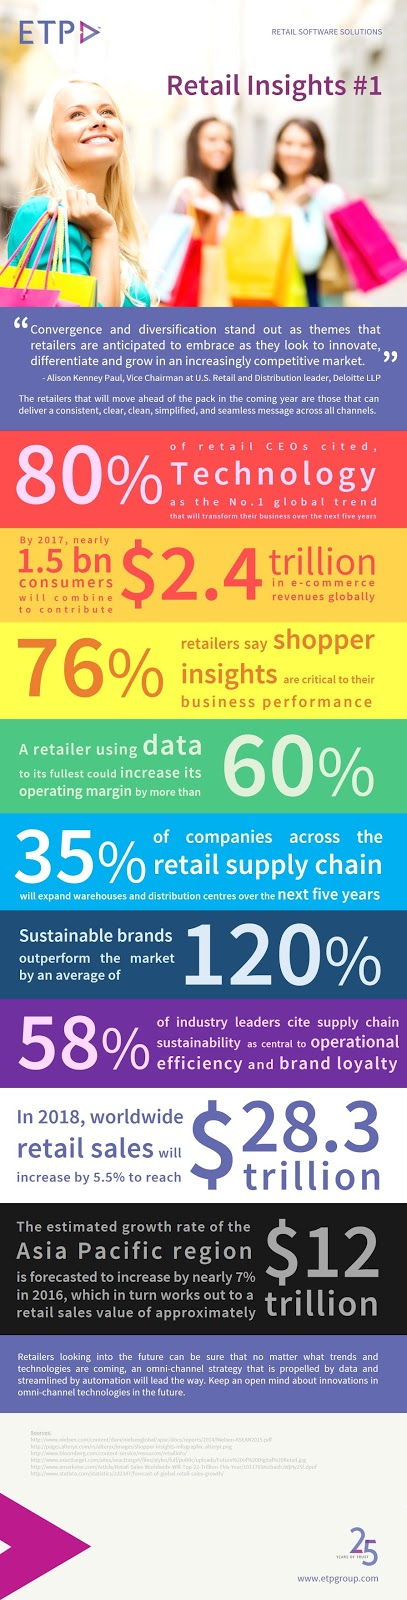 Retail Insights Infographic